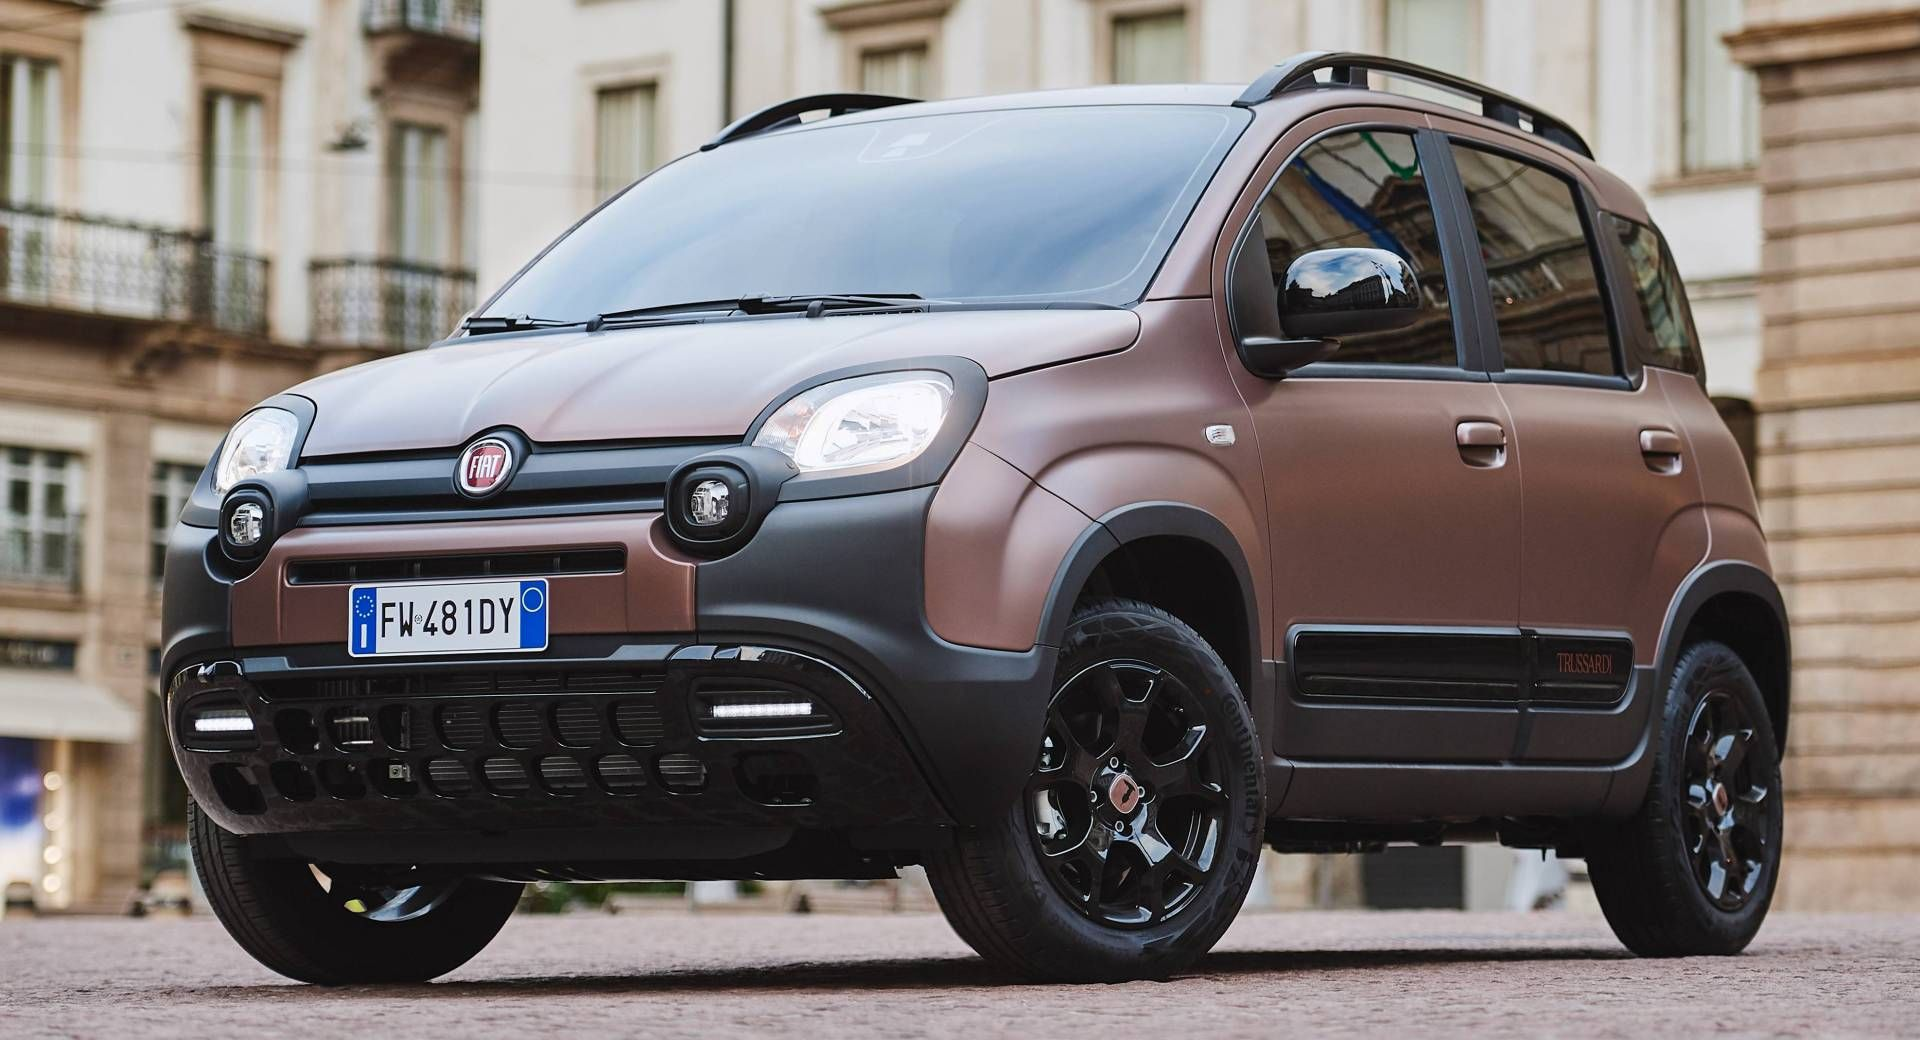 New Panda Trussardi Is The First Luxury Version Of Fiat S City Car